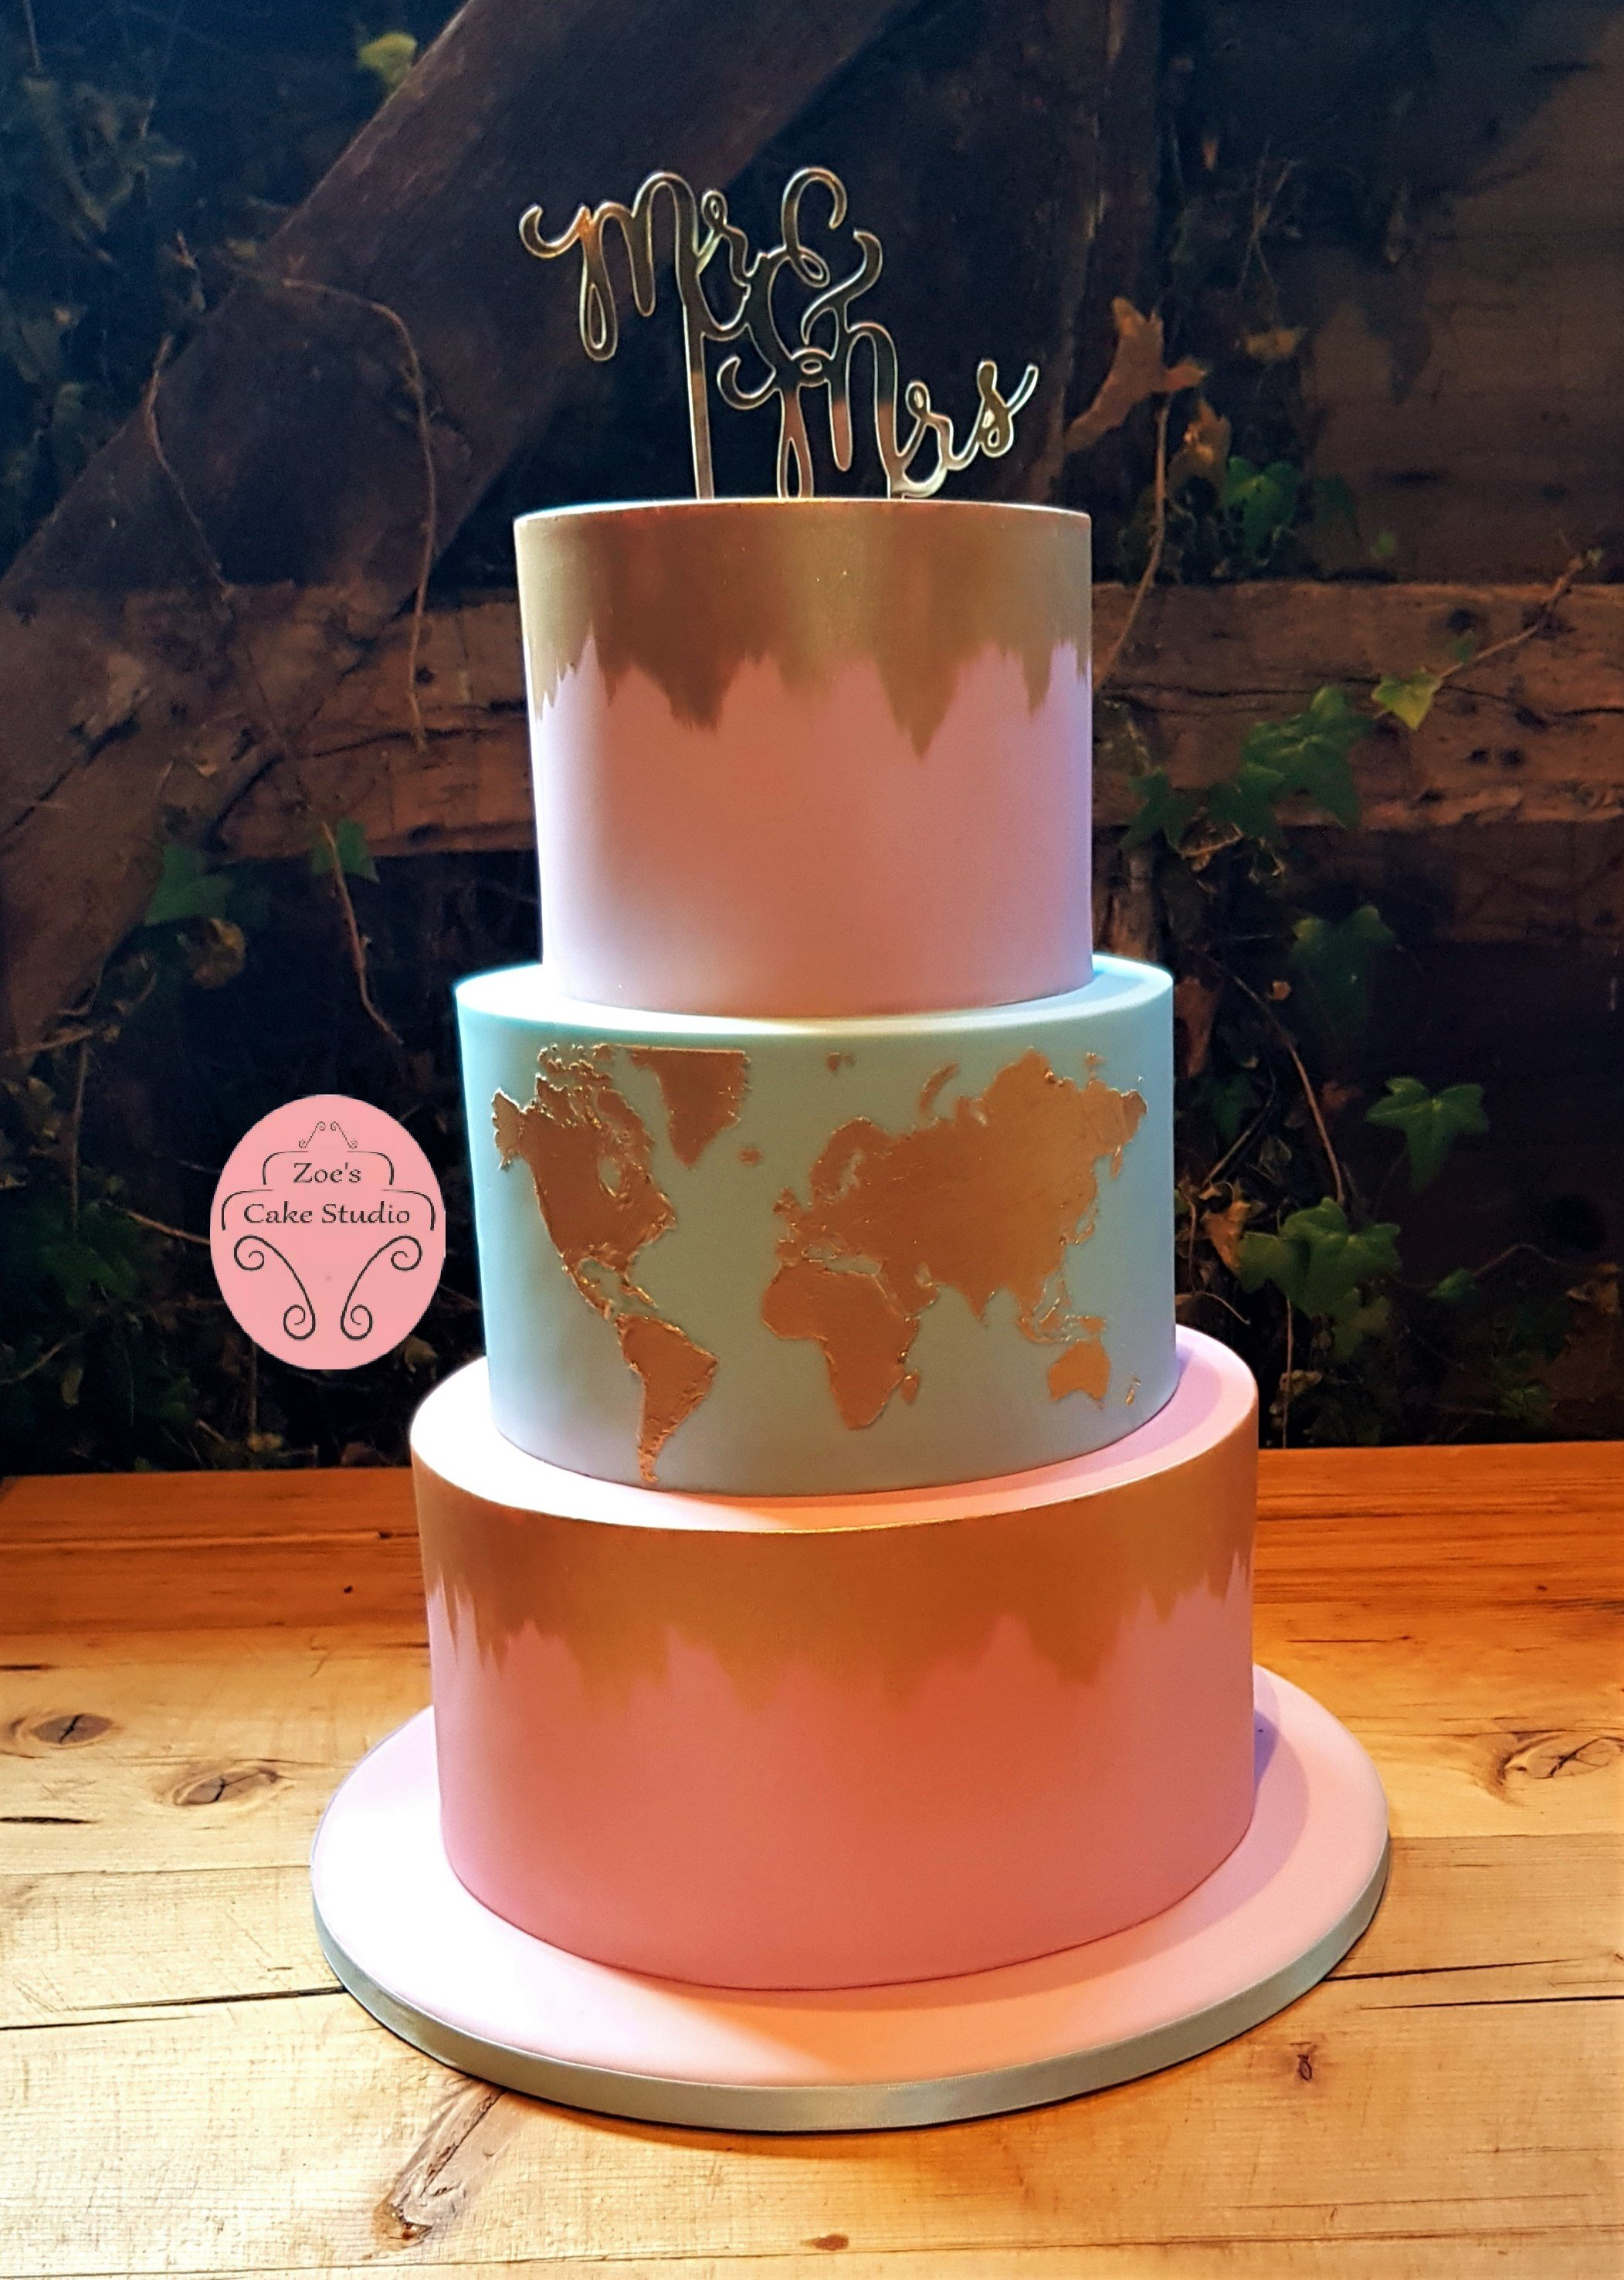 3 Tier world map wedding cake - Zoe's Cake Studio - Cake ... Map Cake on map quotes, map making, map for us, map with title, map project ideas, map cincinnati ohio, map in europe, map guest book, map my route, map party decor, map with mountains, map niagara on the lake, map in spanish, map from mexico, map with states, map facebook covers, map themed paper products, map timbuktu, map photography, map of the,